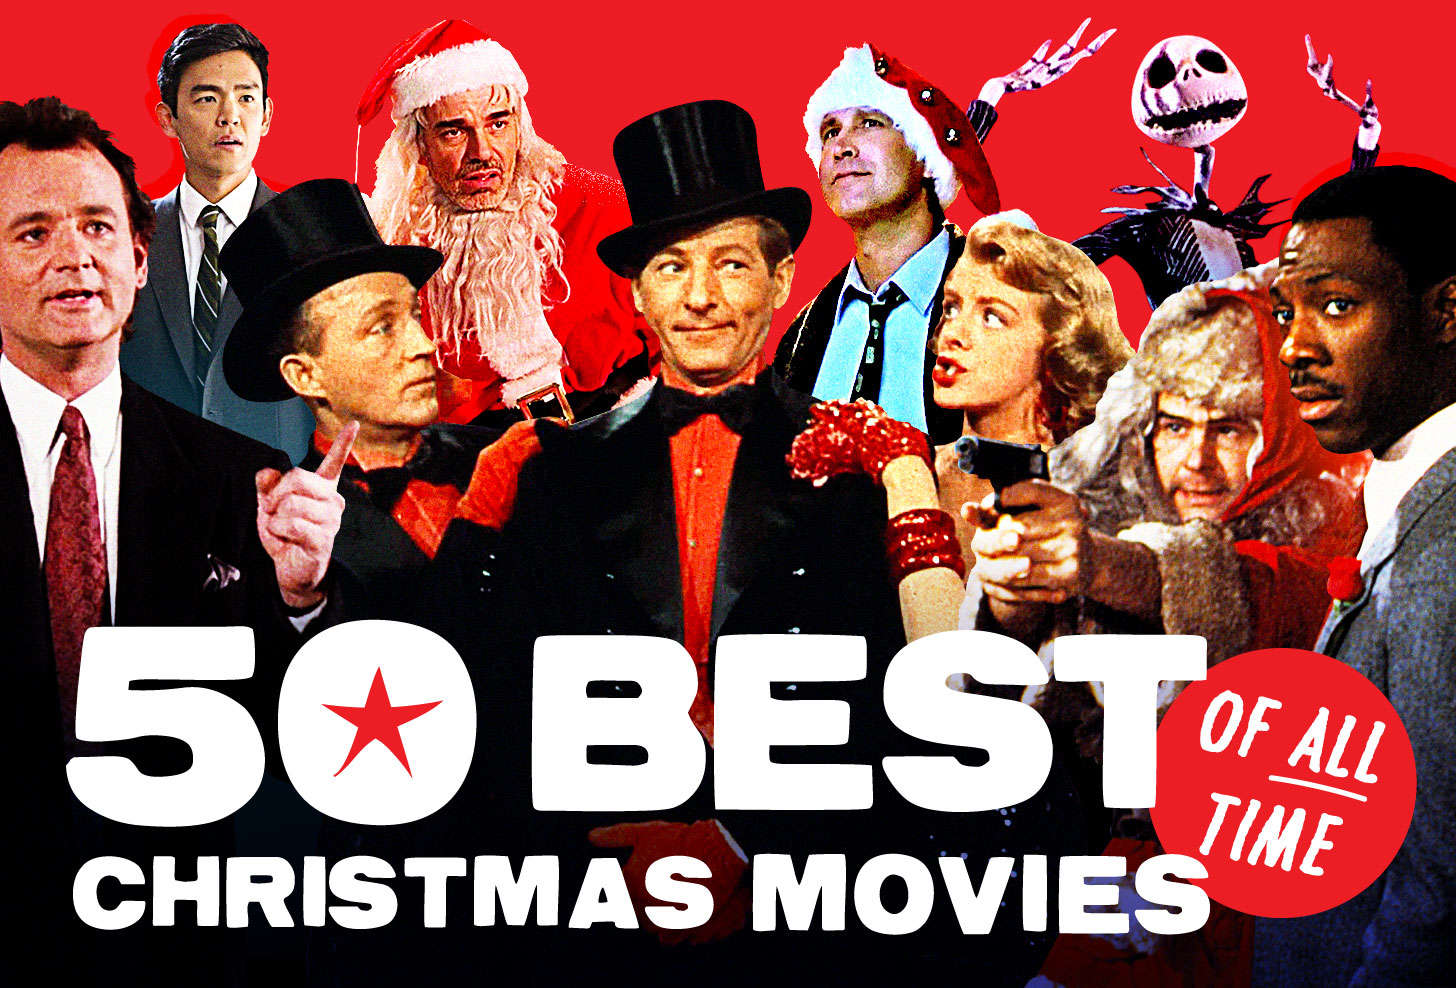 American High School Full Movie 2009 best christmas movies of all time, ranked - thrillist